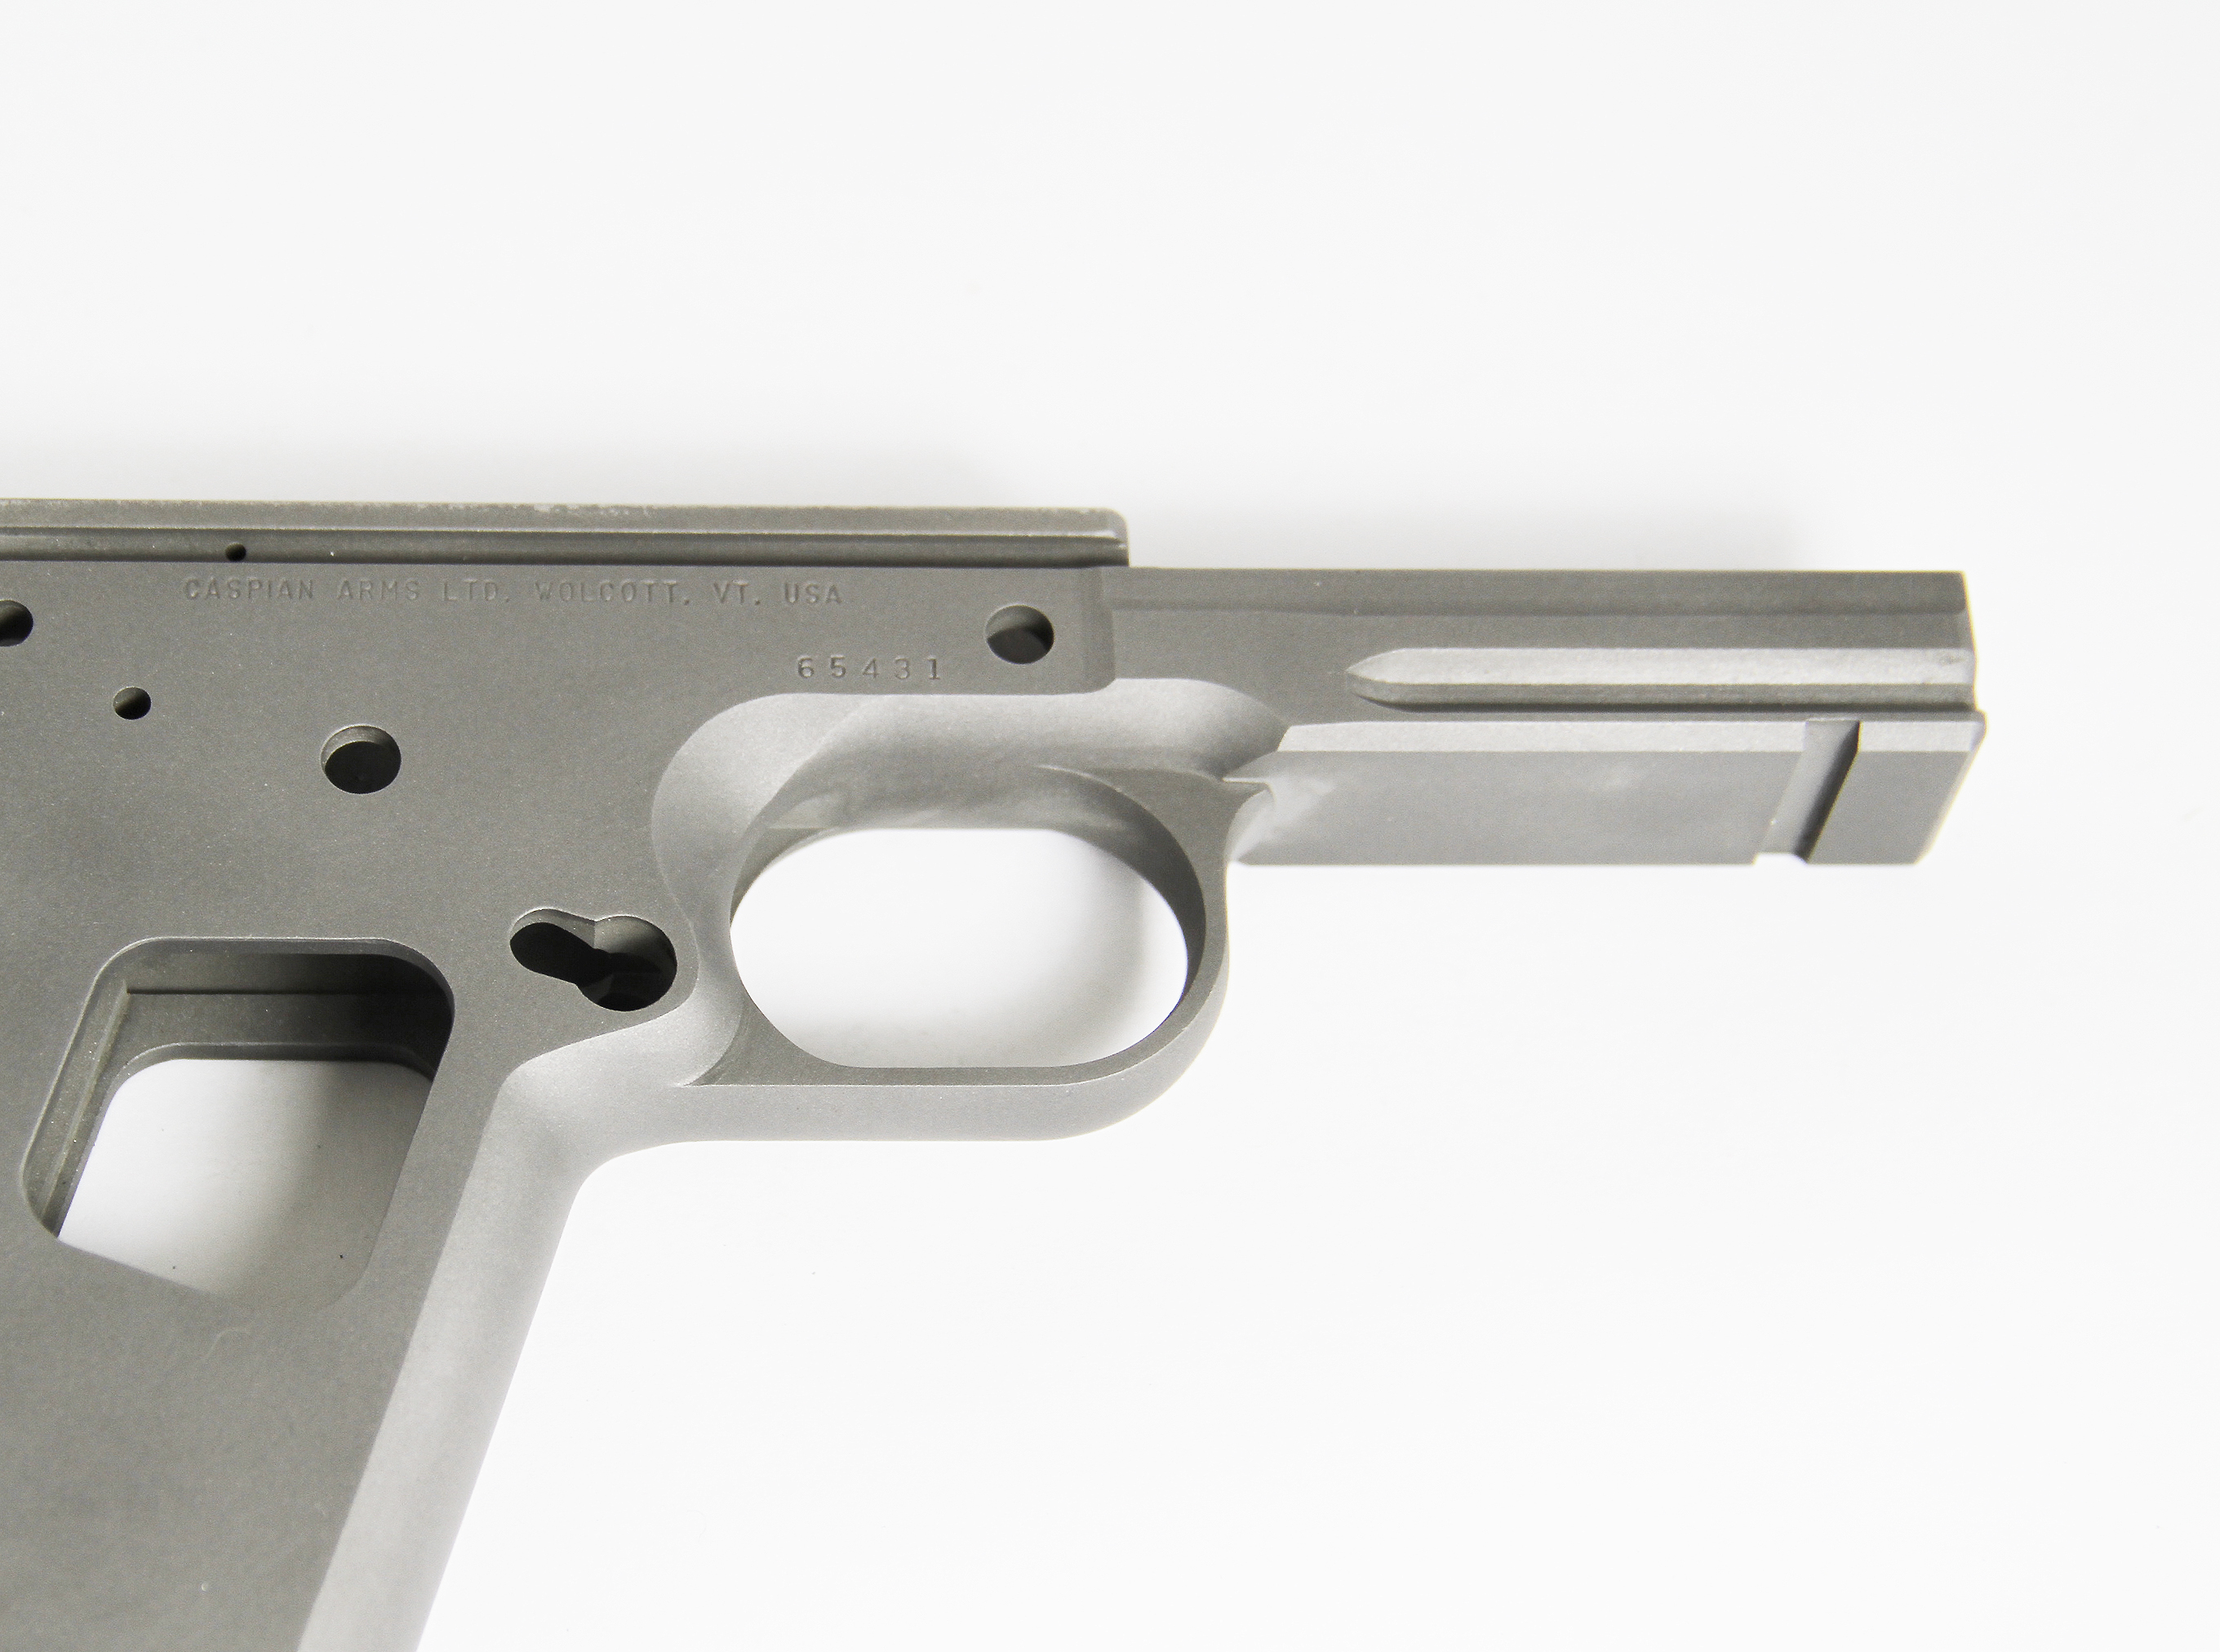 Recon Receiver, Stainless | Caspian Arms